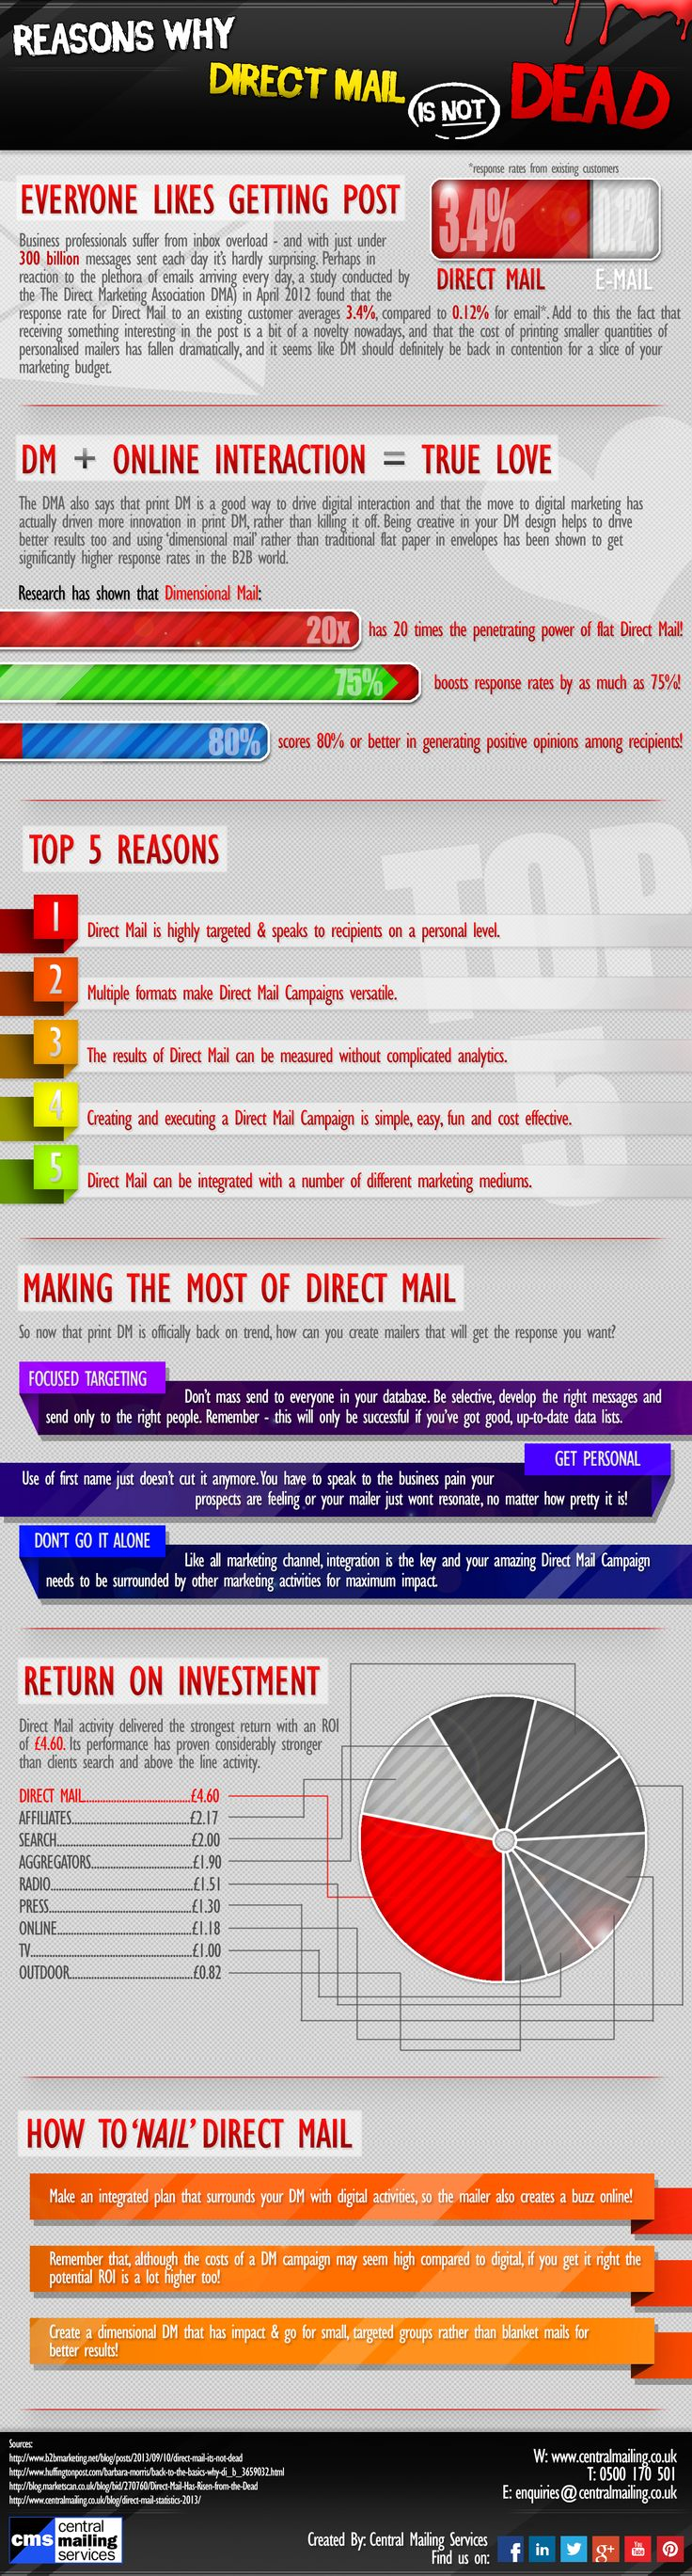 Business professionals suffer from inbox overload